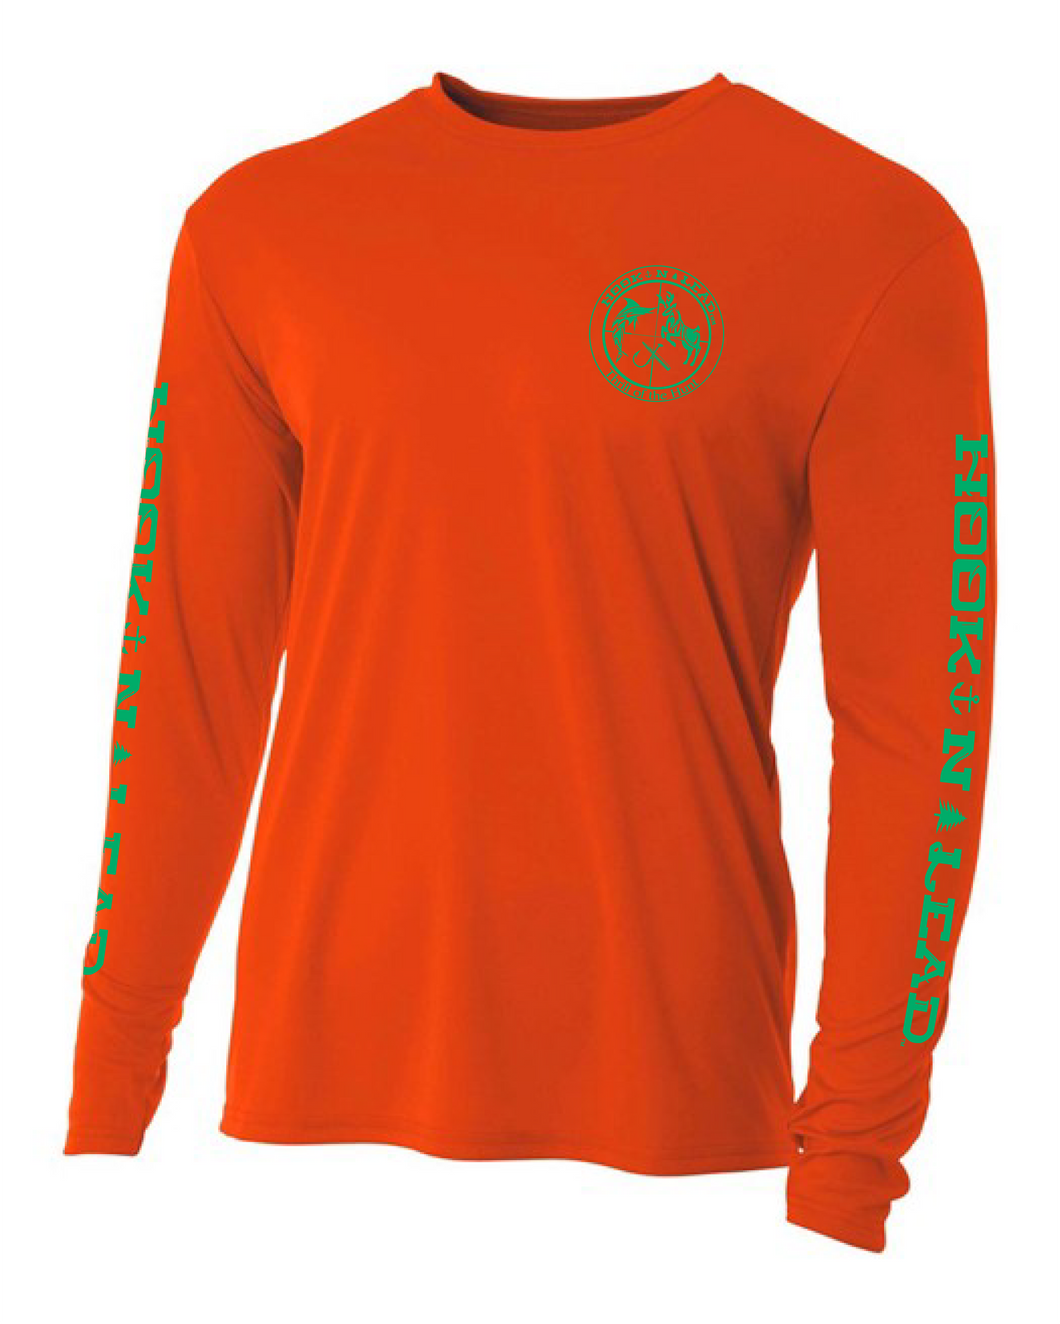 Orange DRI FIT Performance long Ssleeve shirt with green print